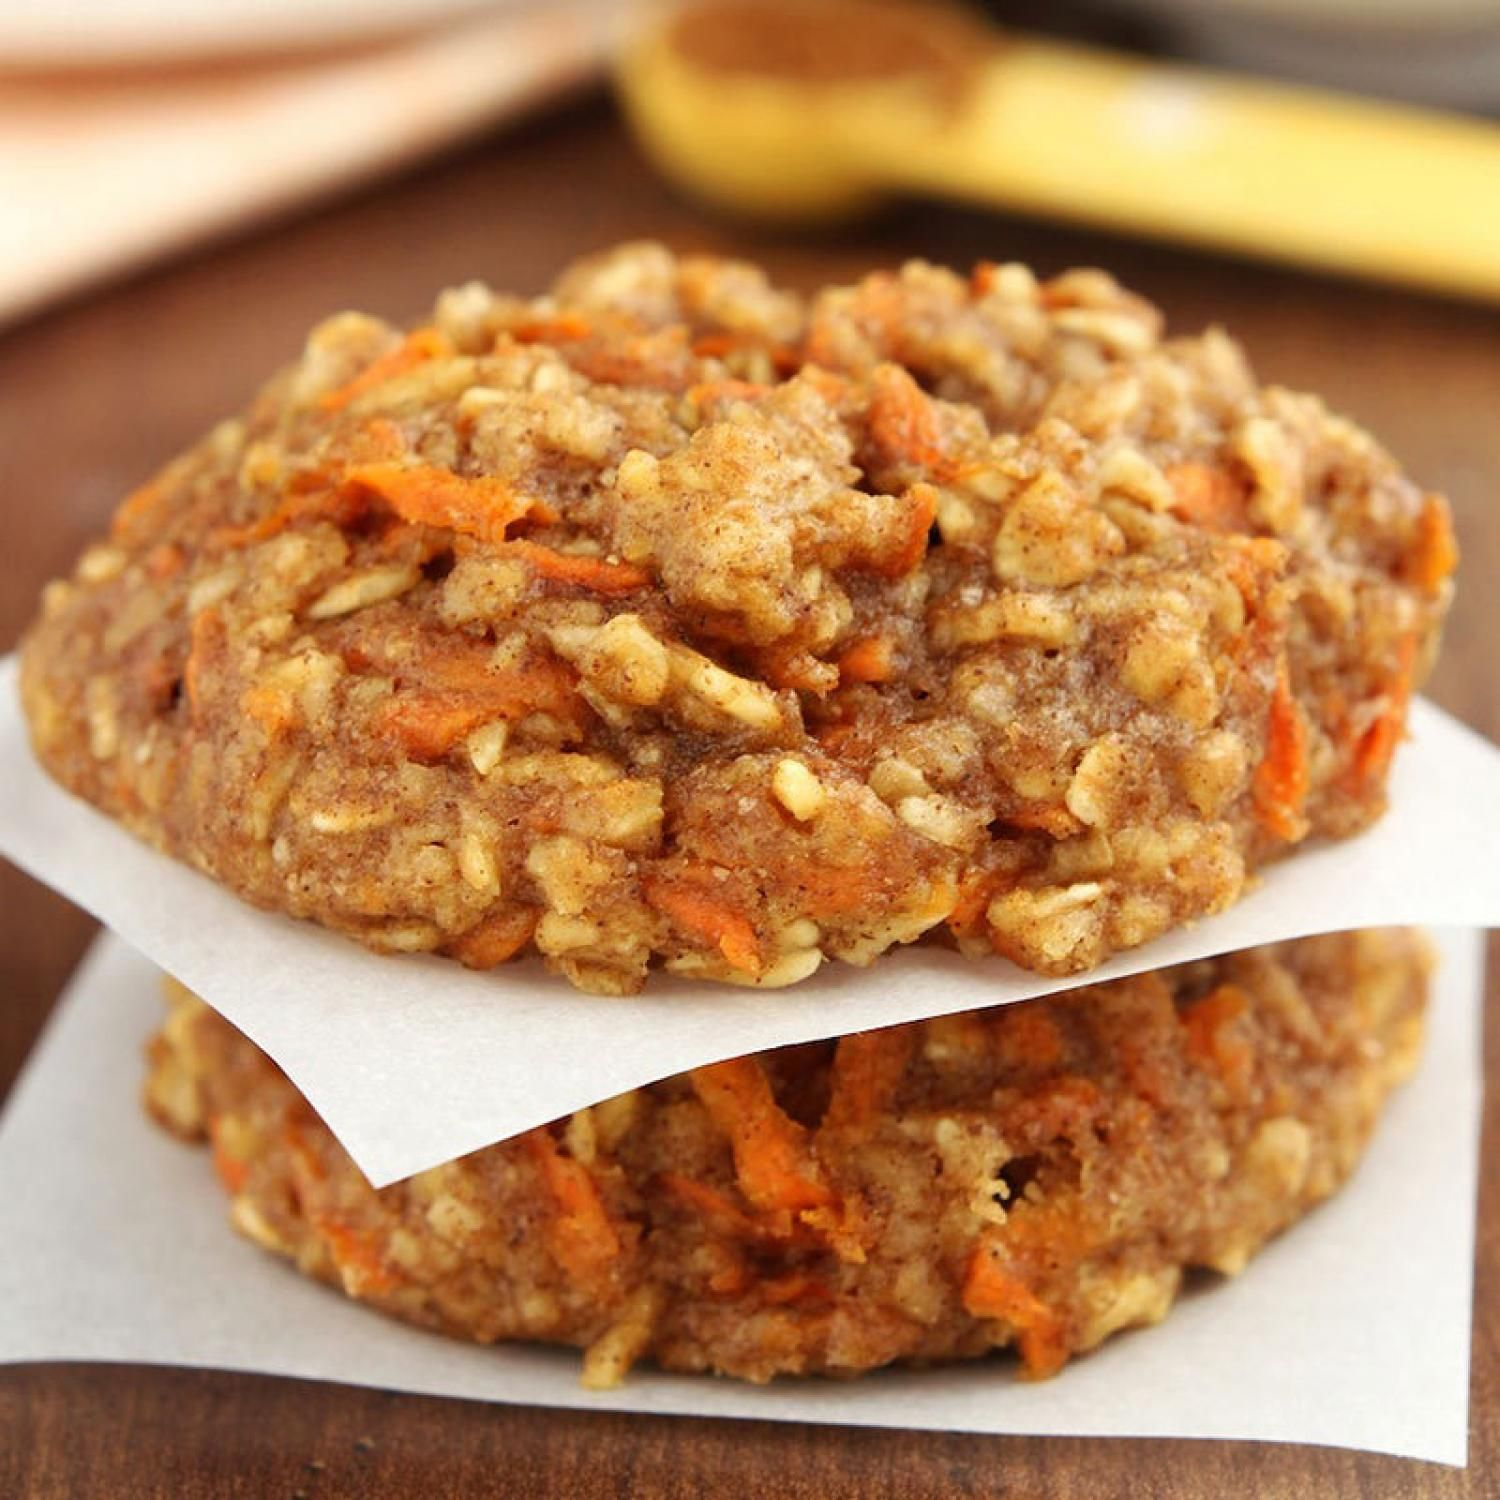 Healthy Desserts: Carrot Cake Oatmeal Cookies.  Each cinnamony bite contains a mouthful of oats and grated carrots, both of which reduce cholesterol.